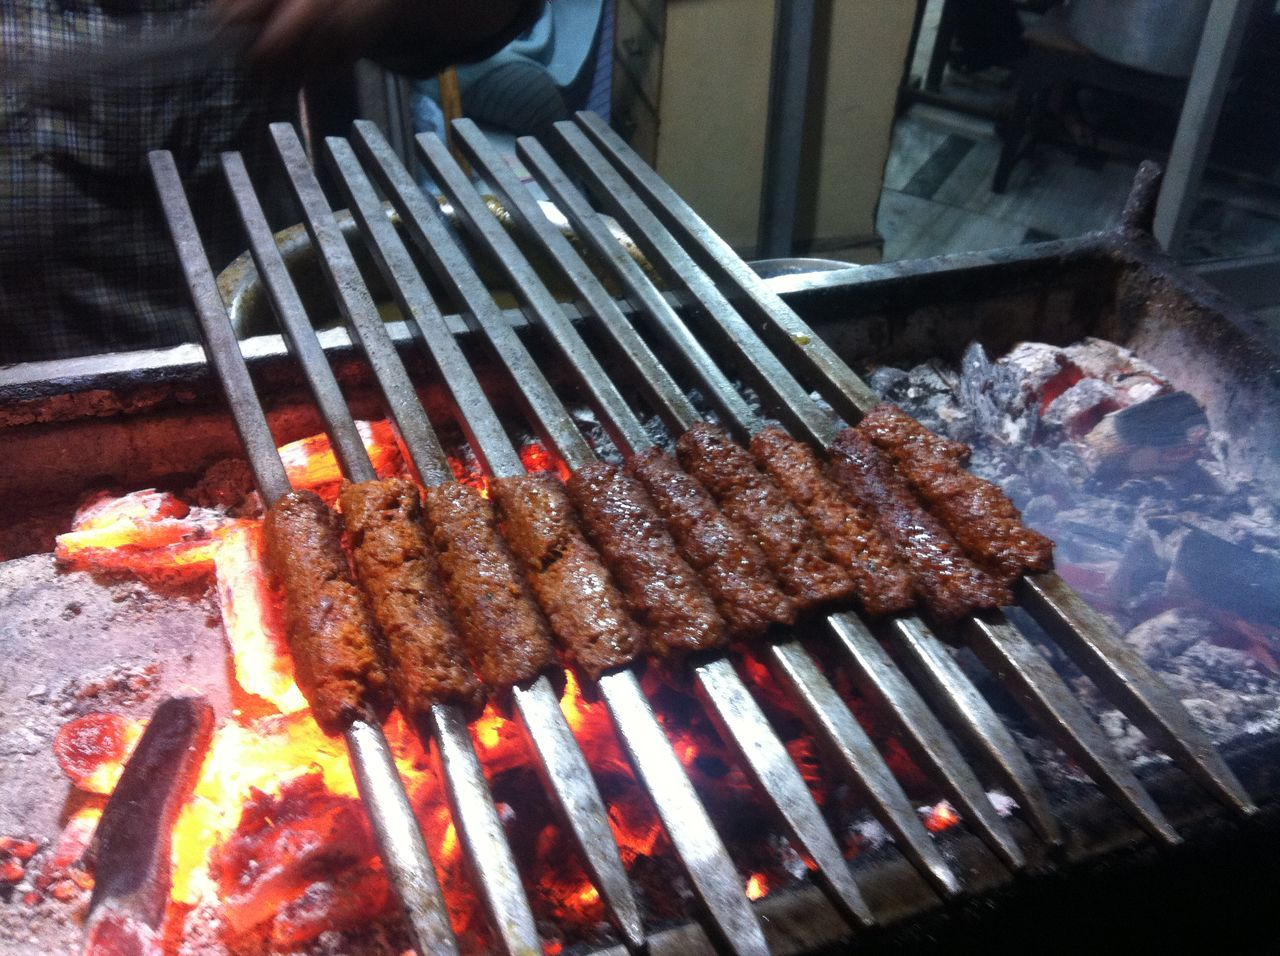 A meal about to happen About To Dig In Barbecue Barbecue Grill Coal Food Food Ahoy Grilled Heat - Temperature Kebabs Meal Meat Preparation